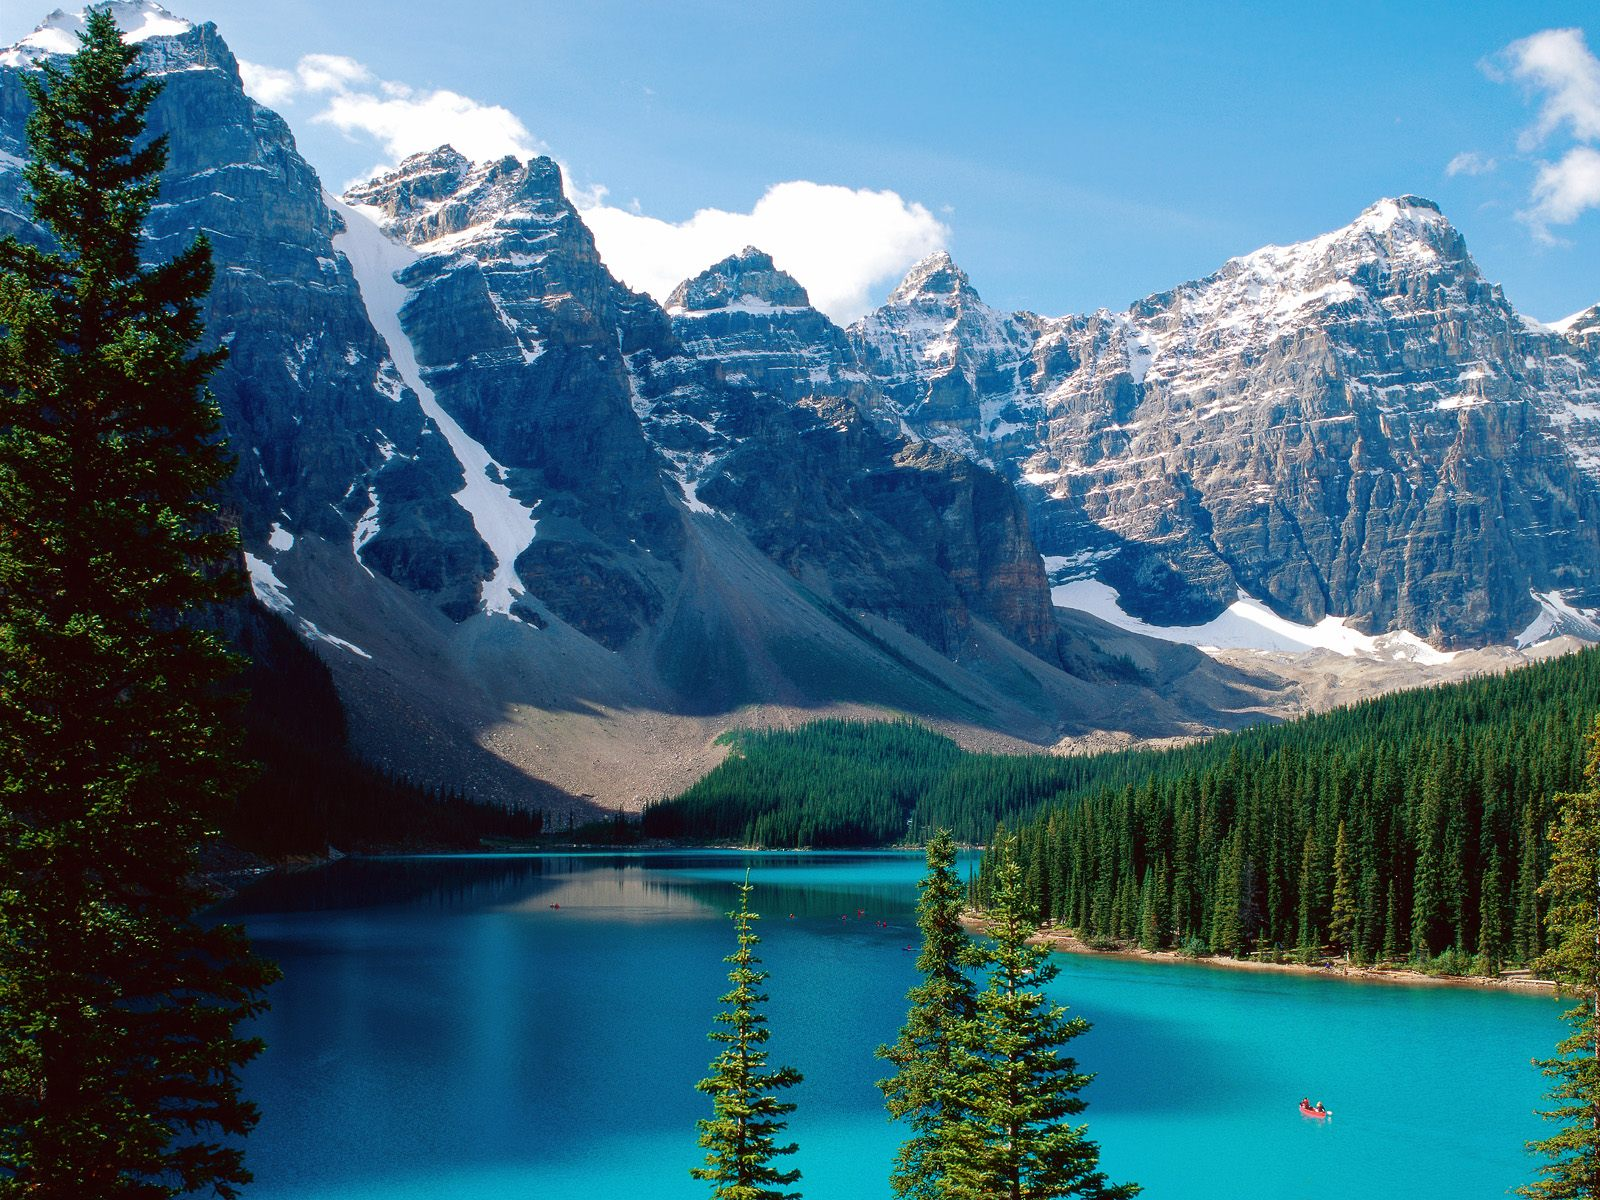 Moraine Lake Banff National Park Canada - Polling 4 Cyber Shots Competition OCT 2010